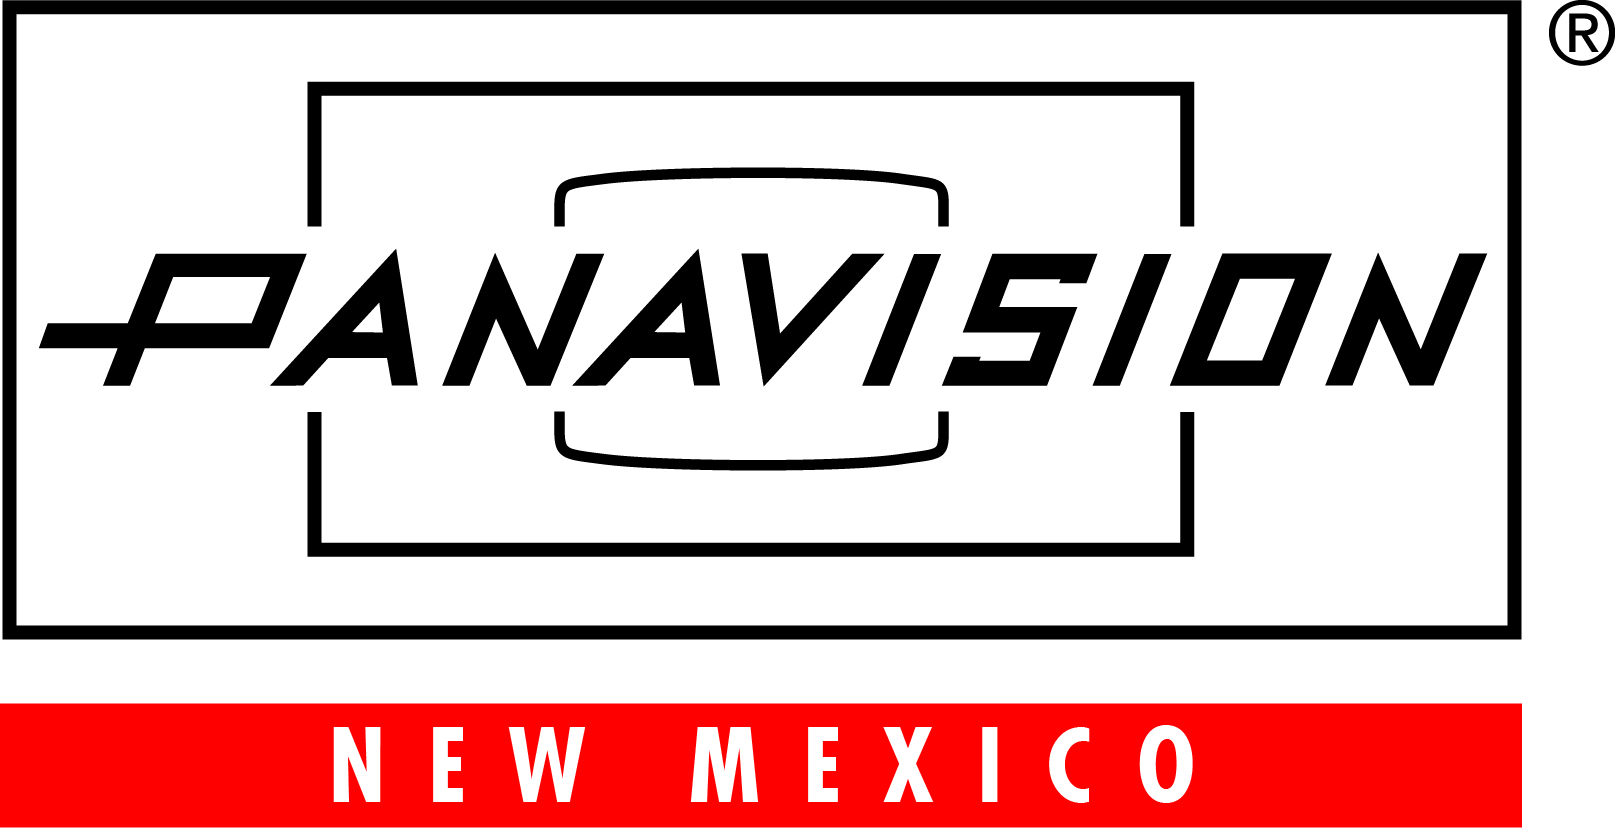 Special Thank You to James Flynn & Panavision New Mexico